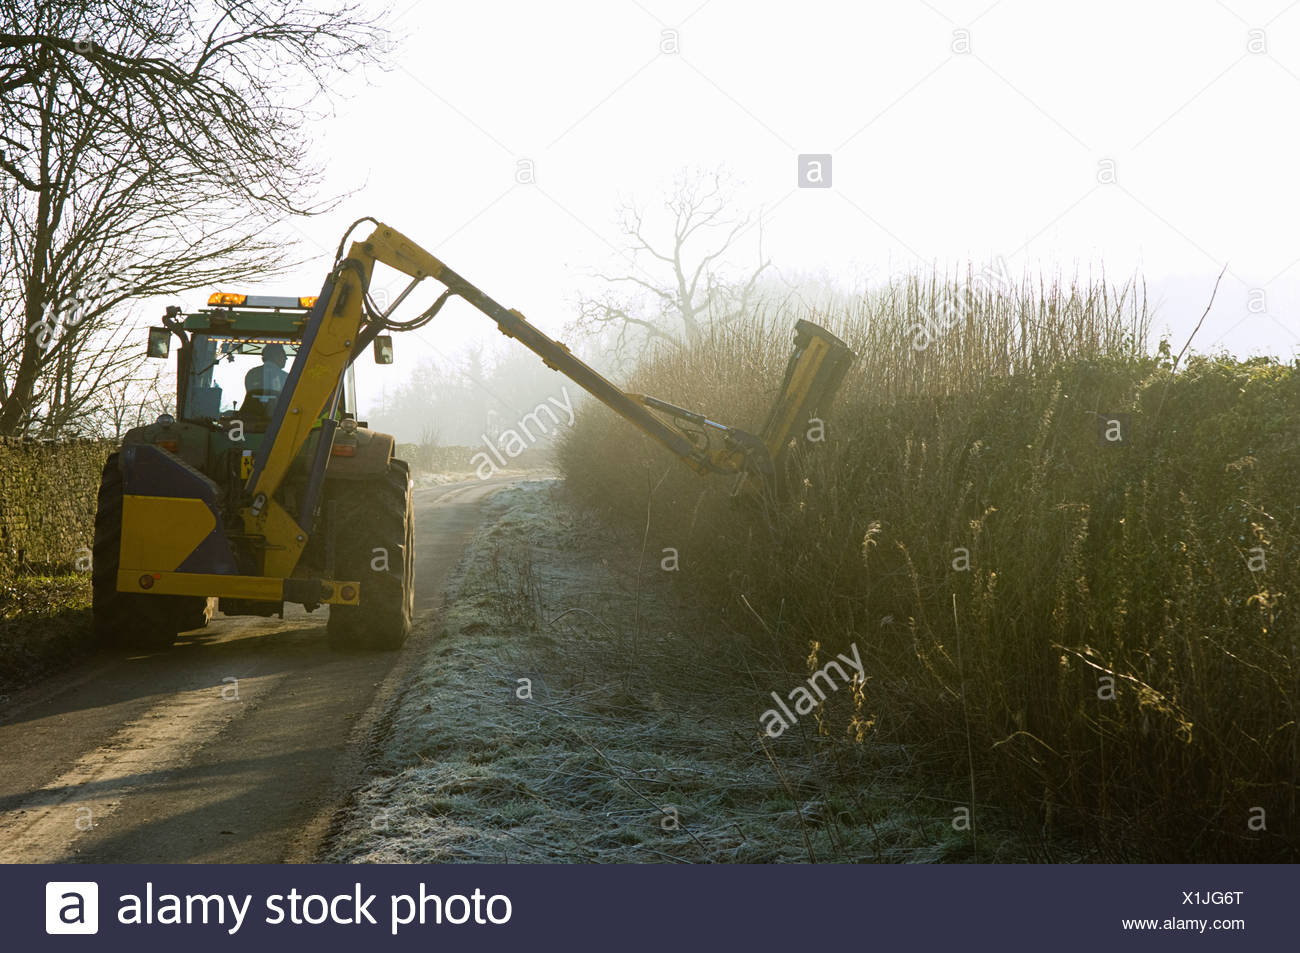 Tractor cutting hedge along country road - Stock Image